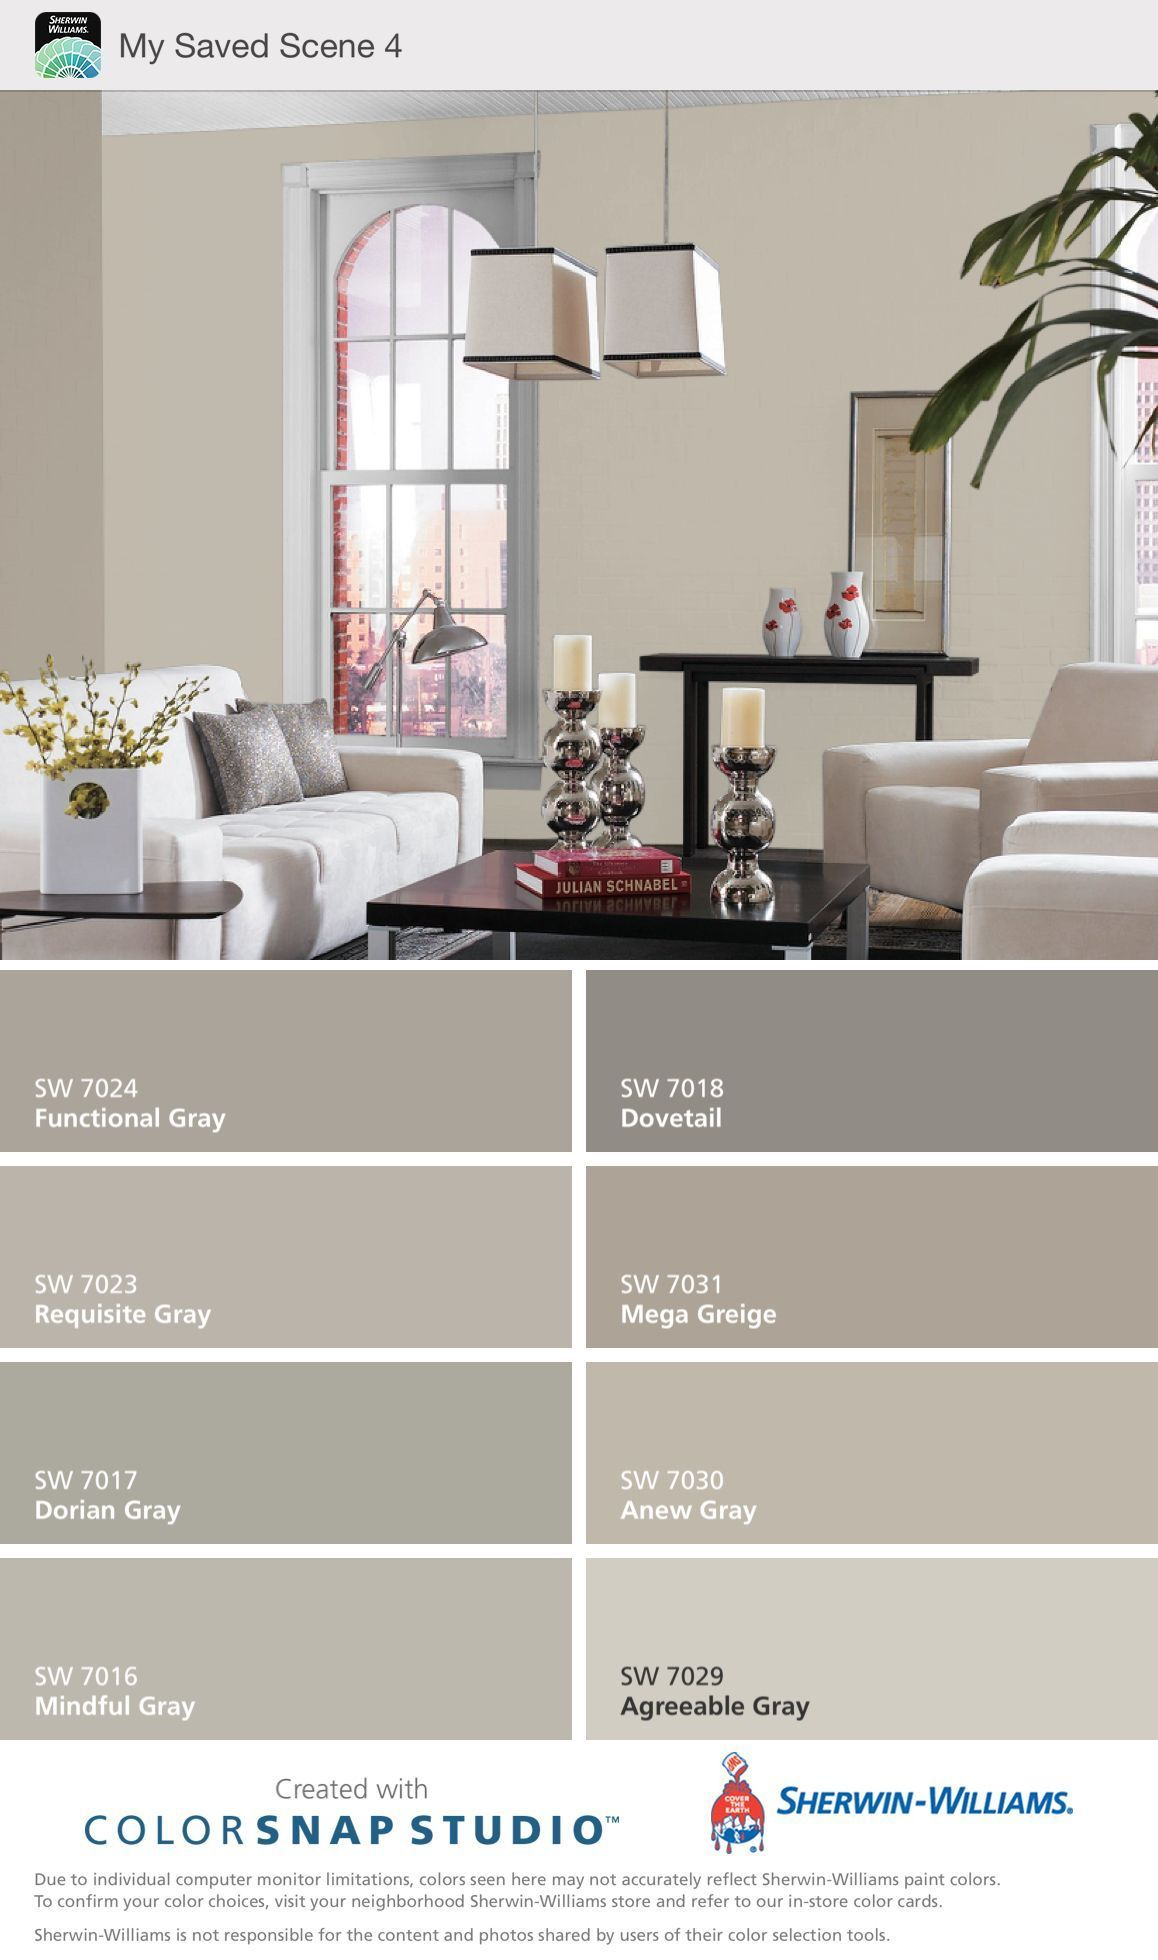 11 Stunning Blue Interior Painting Ideas Paint Colors For Home Anew Gray Room Colors